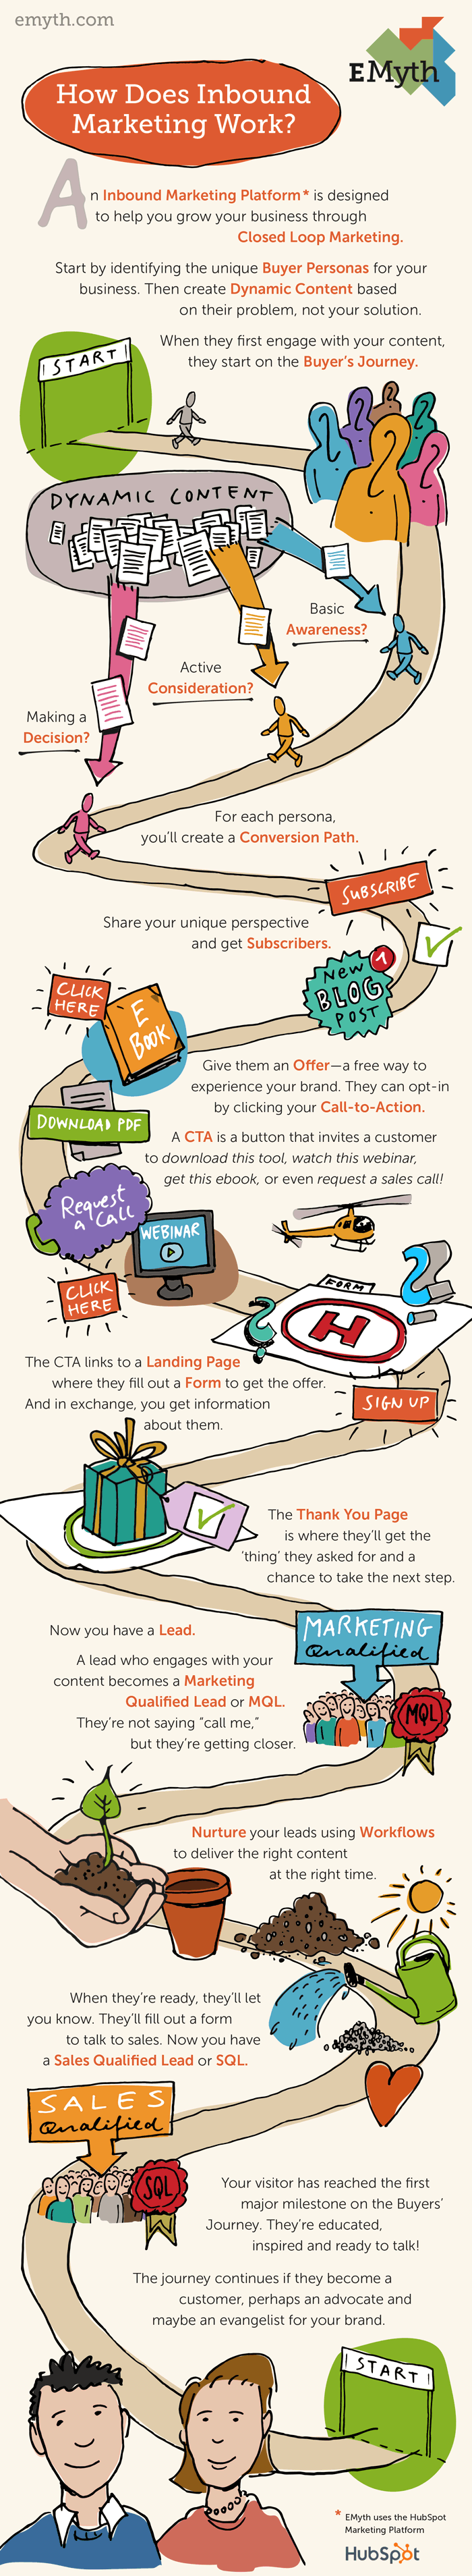 How Does Inbound Marketing Work EMyth Infographic Small